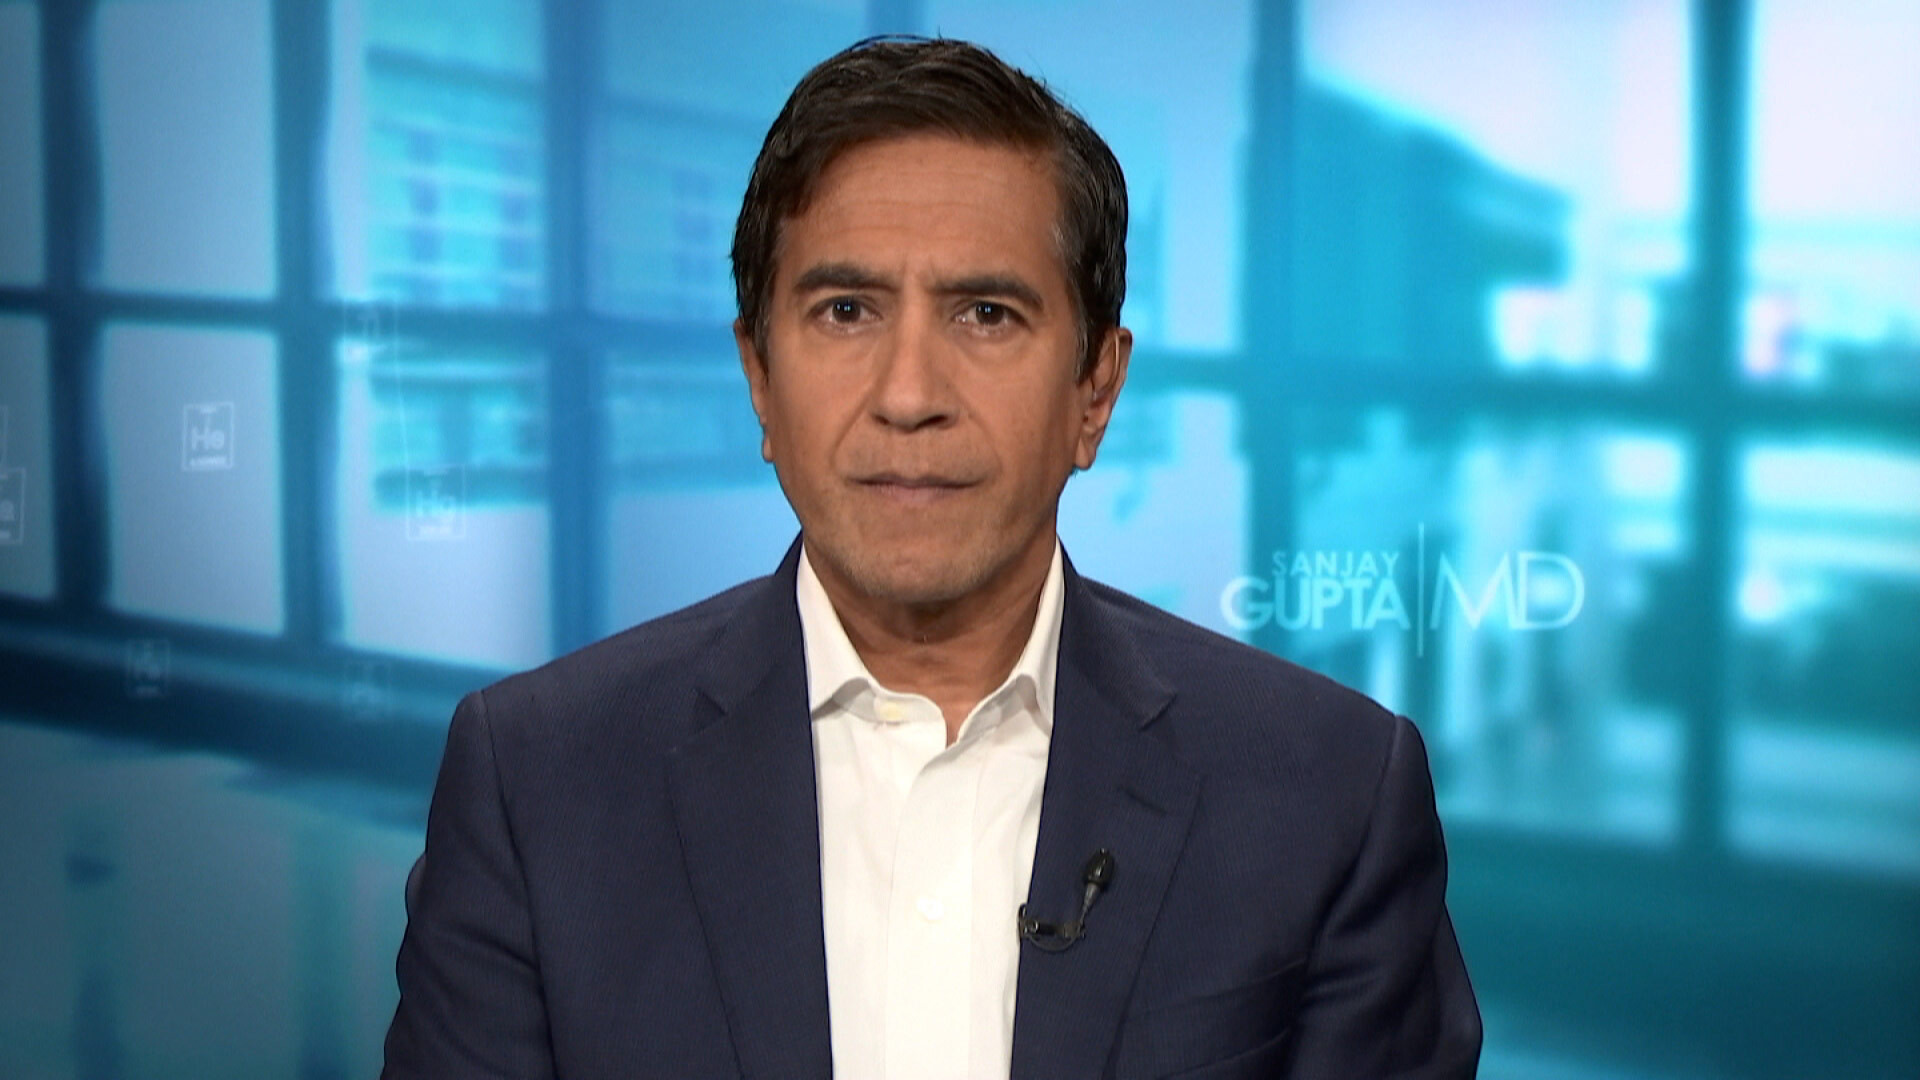 Dr. Sanjay Gupta: Pandemic proofing your life is not what you think